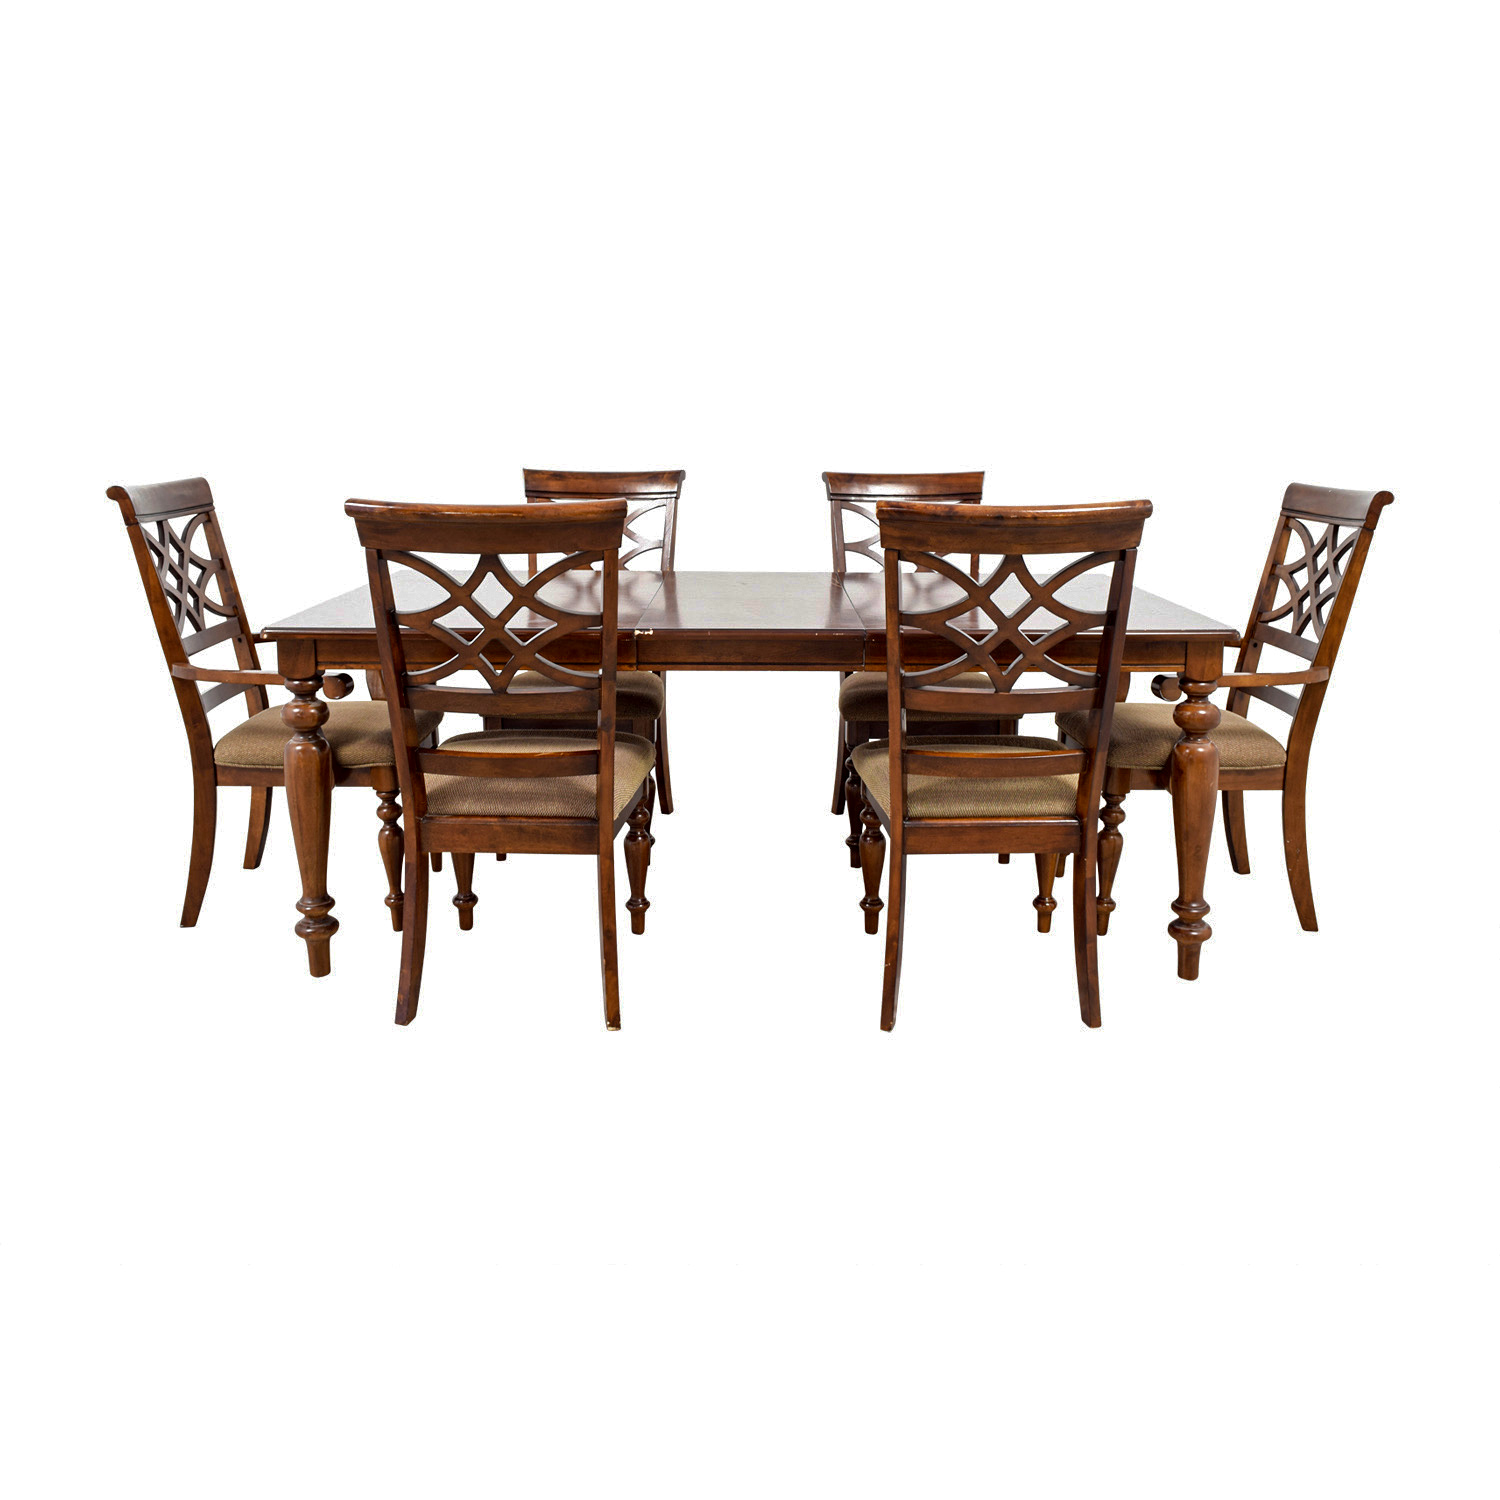 Bob's Furniture Wood Dining Set Table with Extention Leaf sale